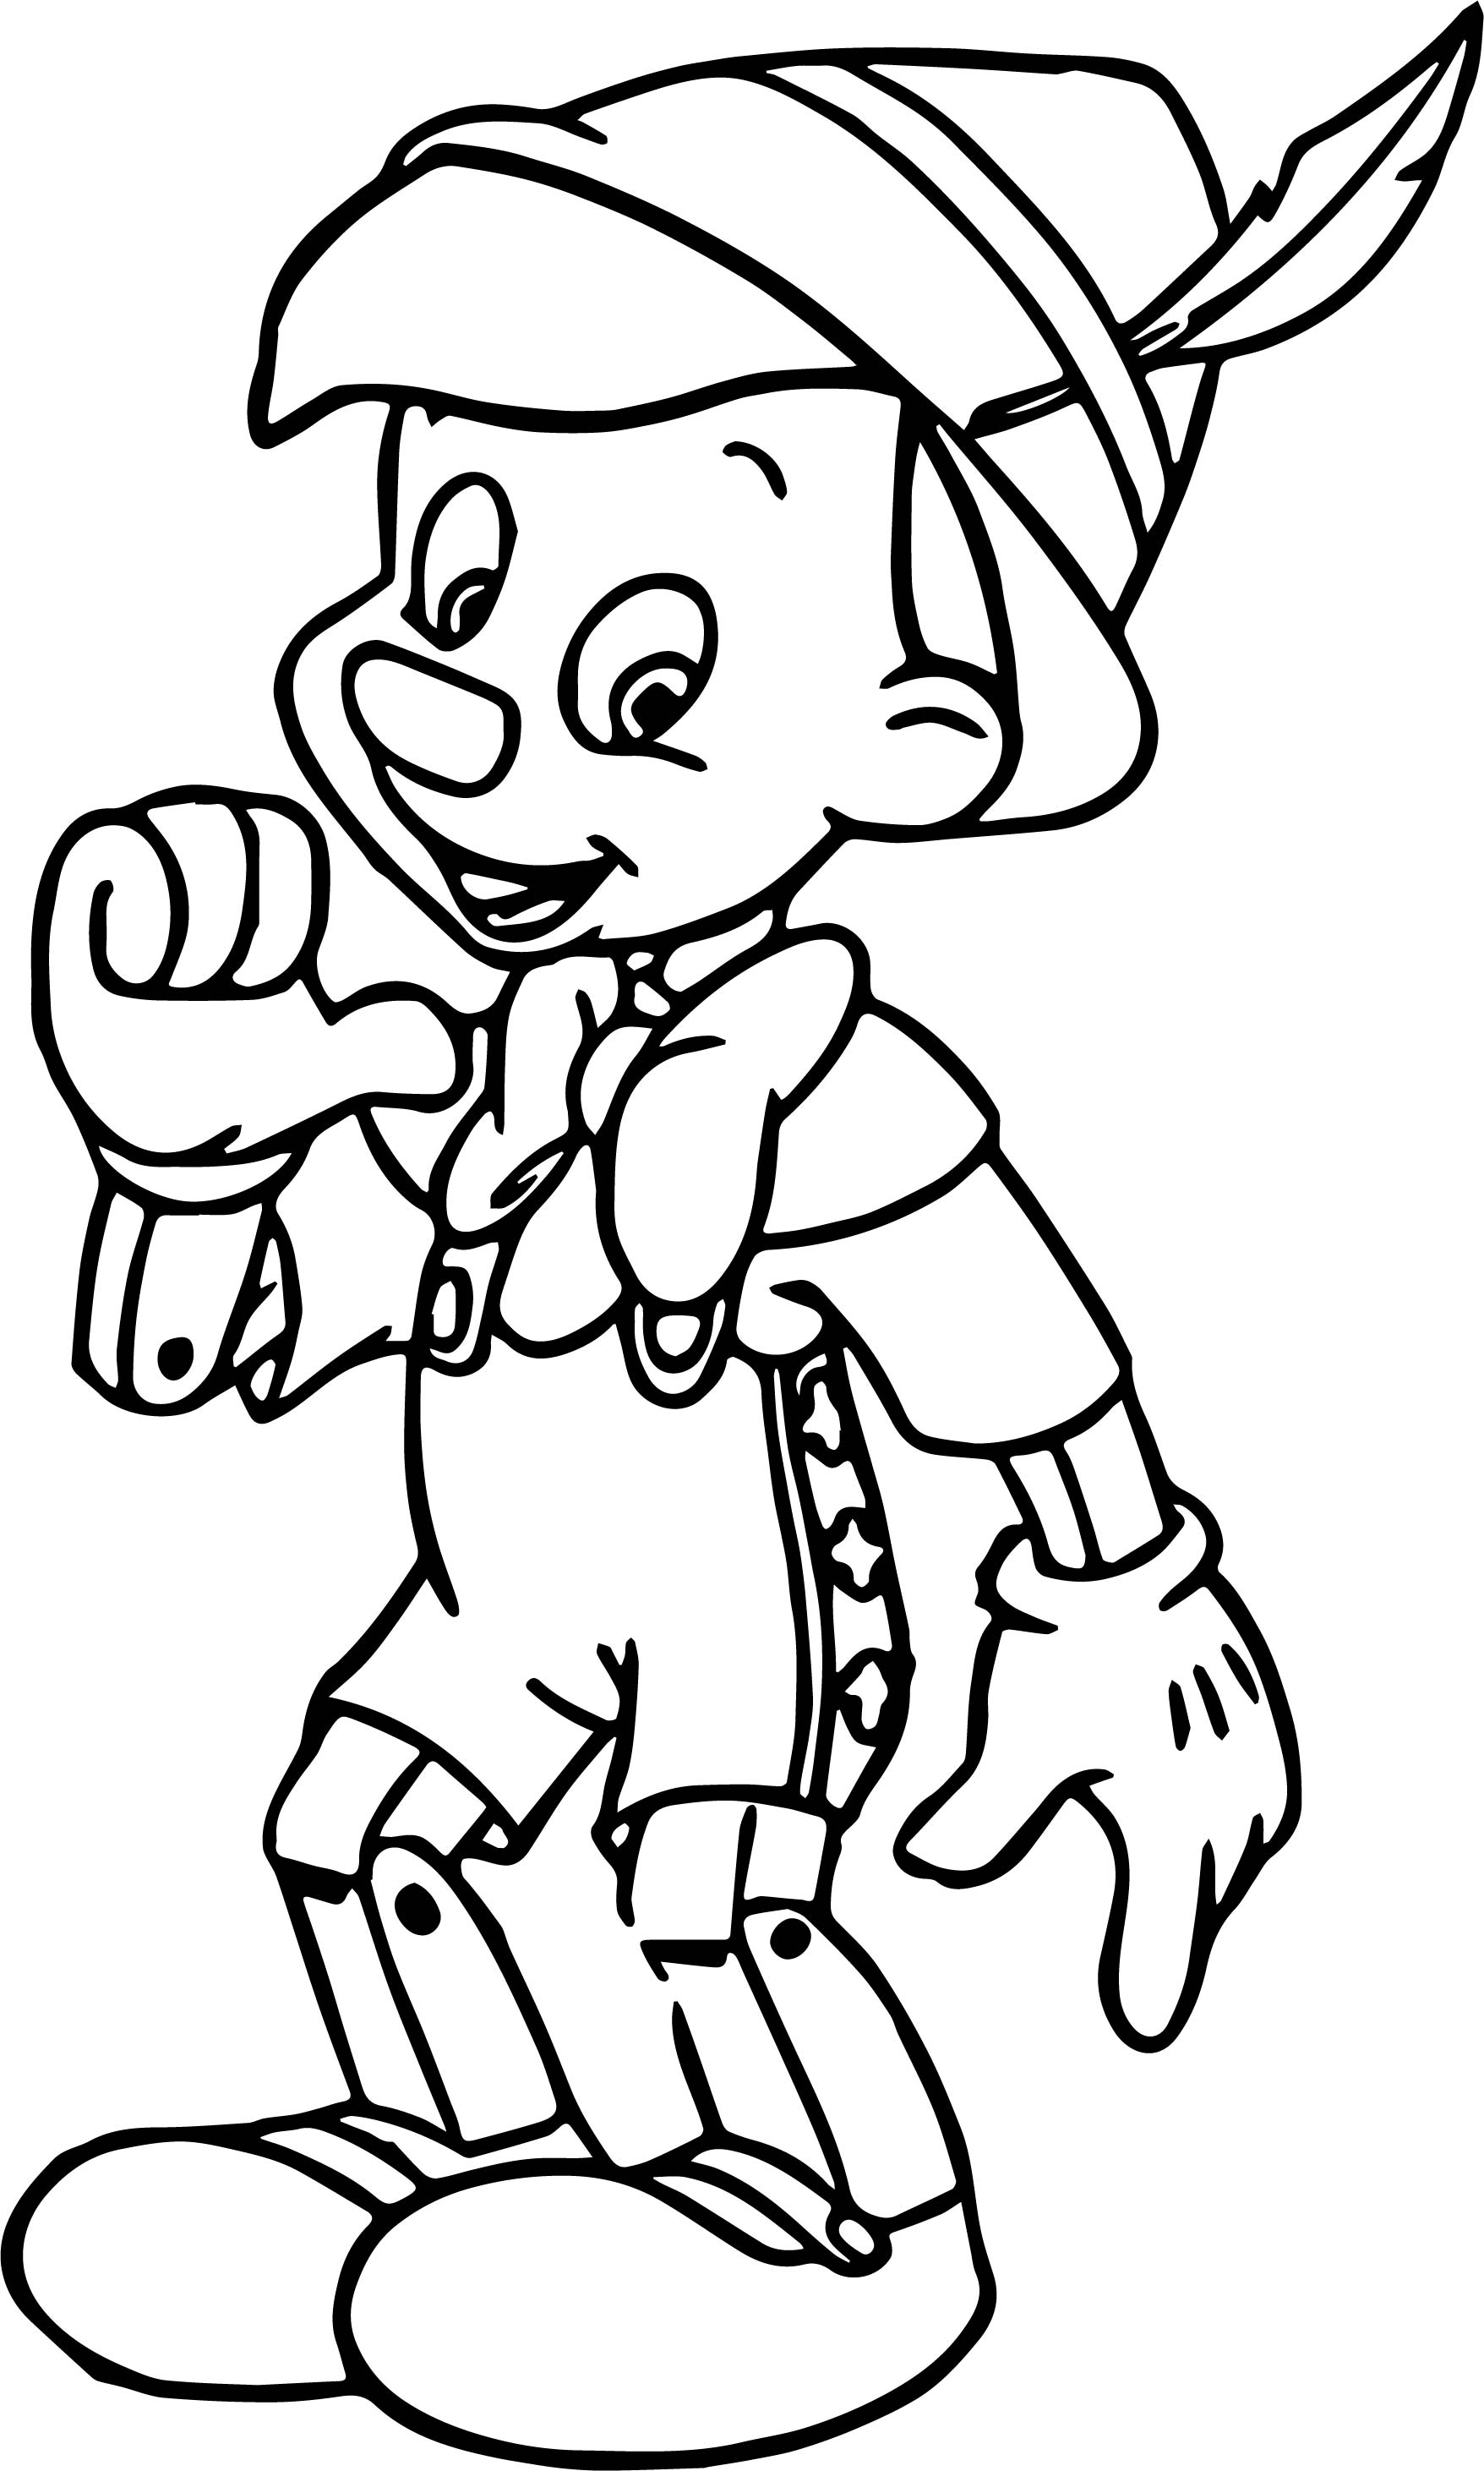 Pinocchio Me Coloring Pages